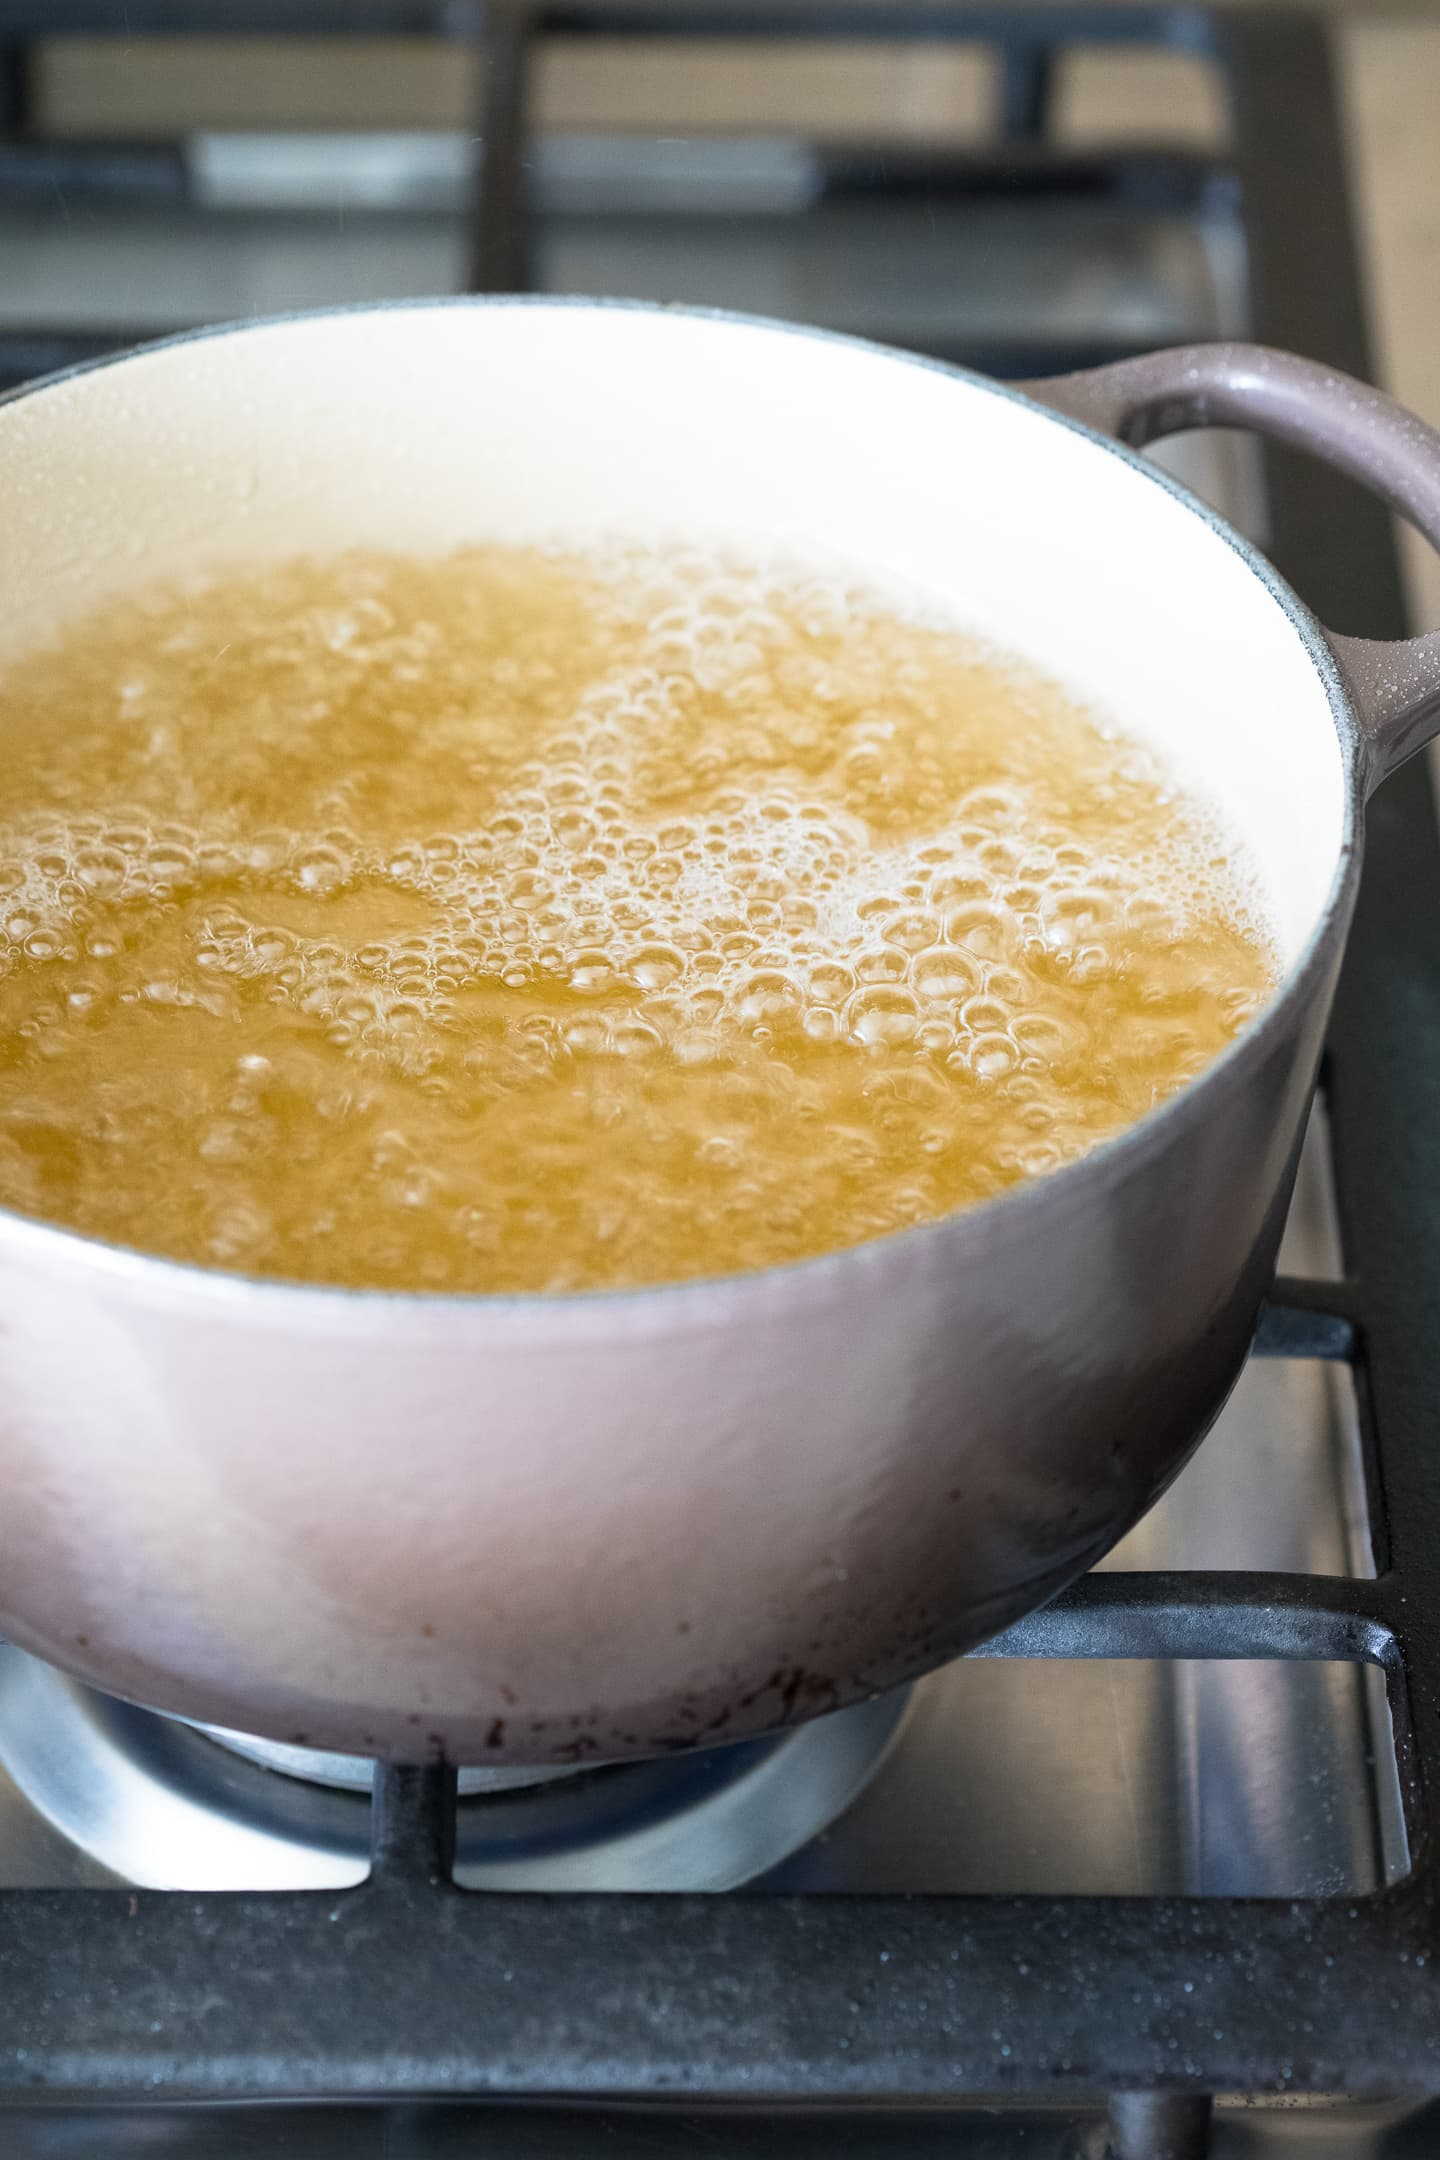 Angled view of sugar syrup simmering in a pot on the stove.